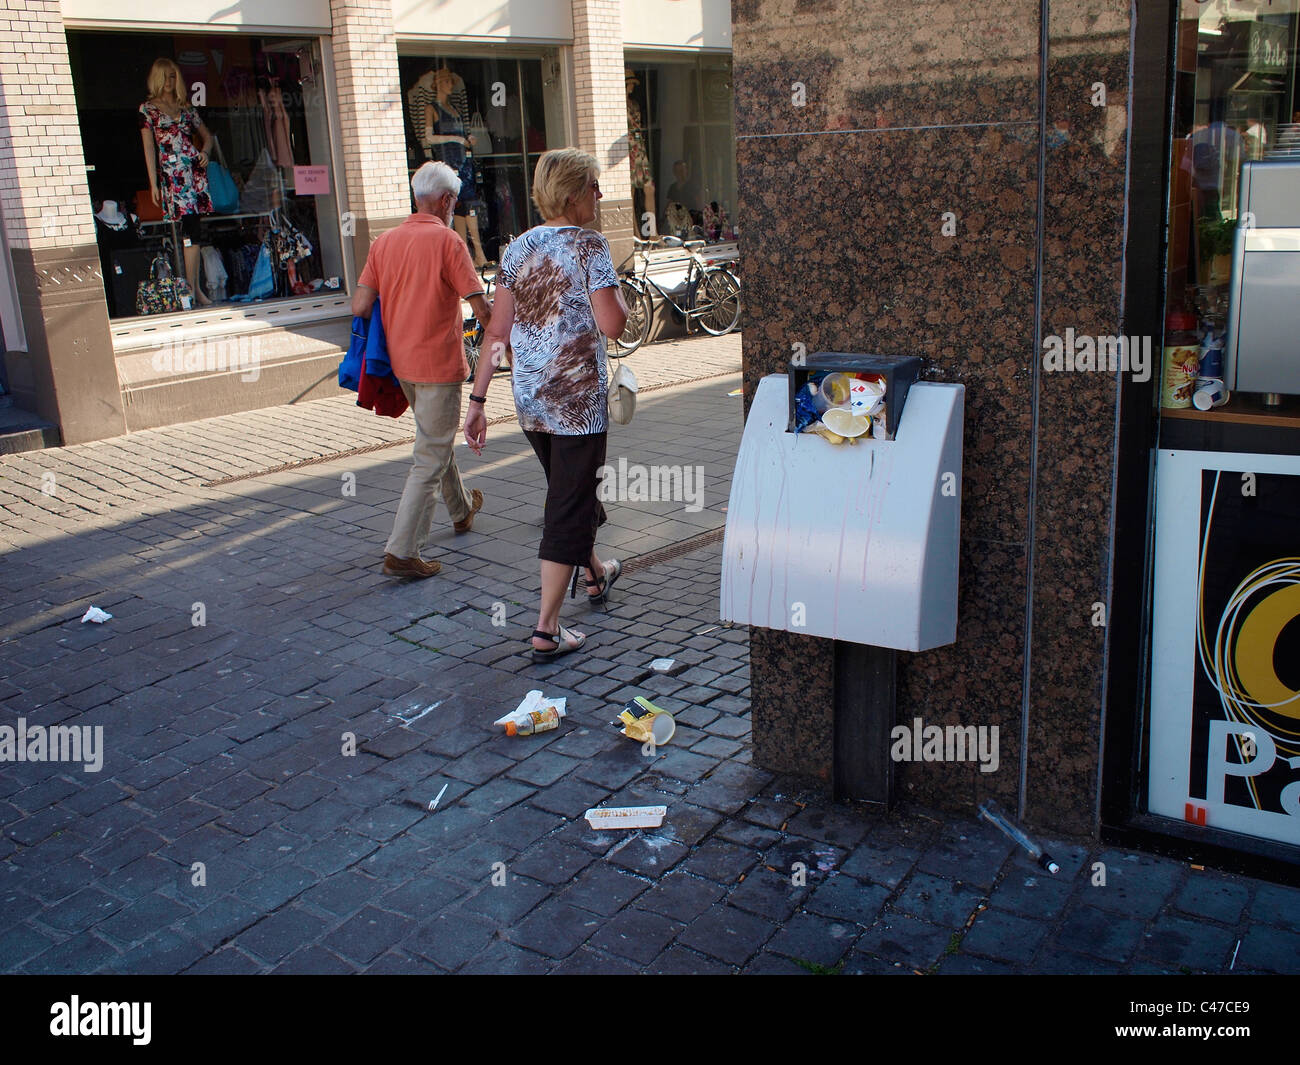 Dirty street with overflowing garbage bin, Breda, Noord Brabant, the Netherlands - Stock Image